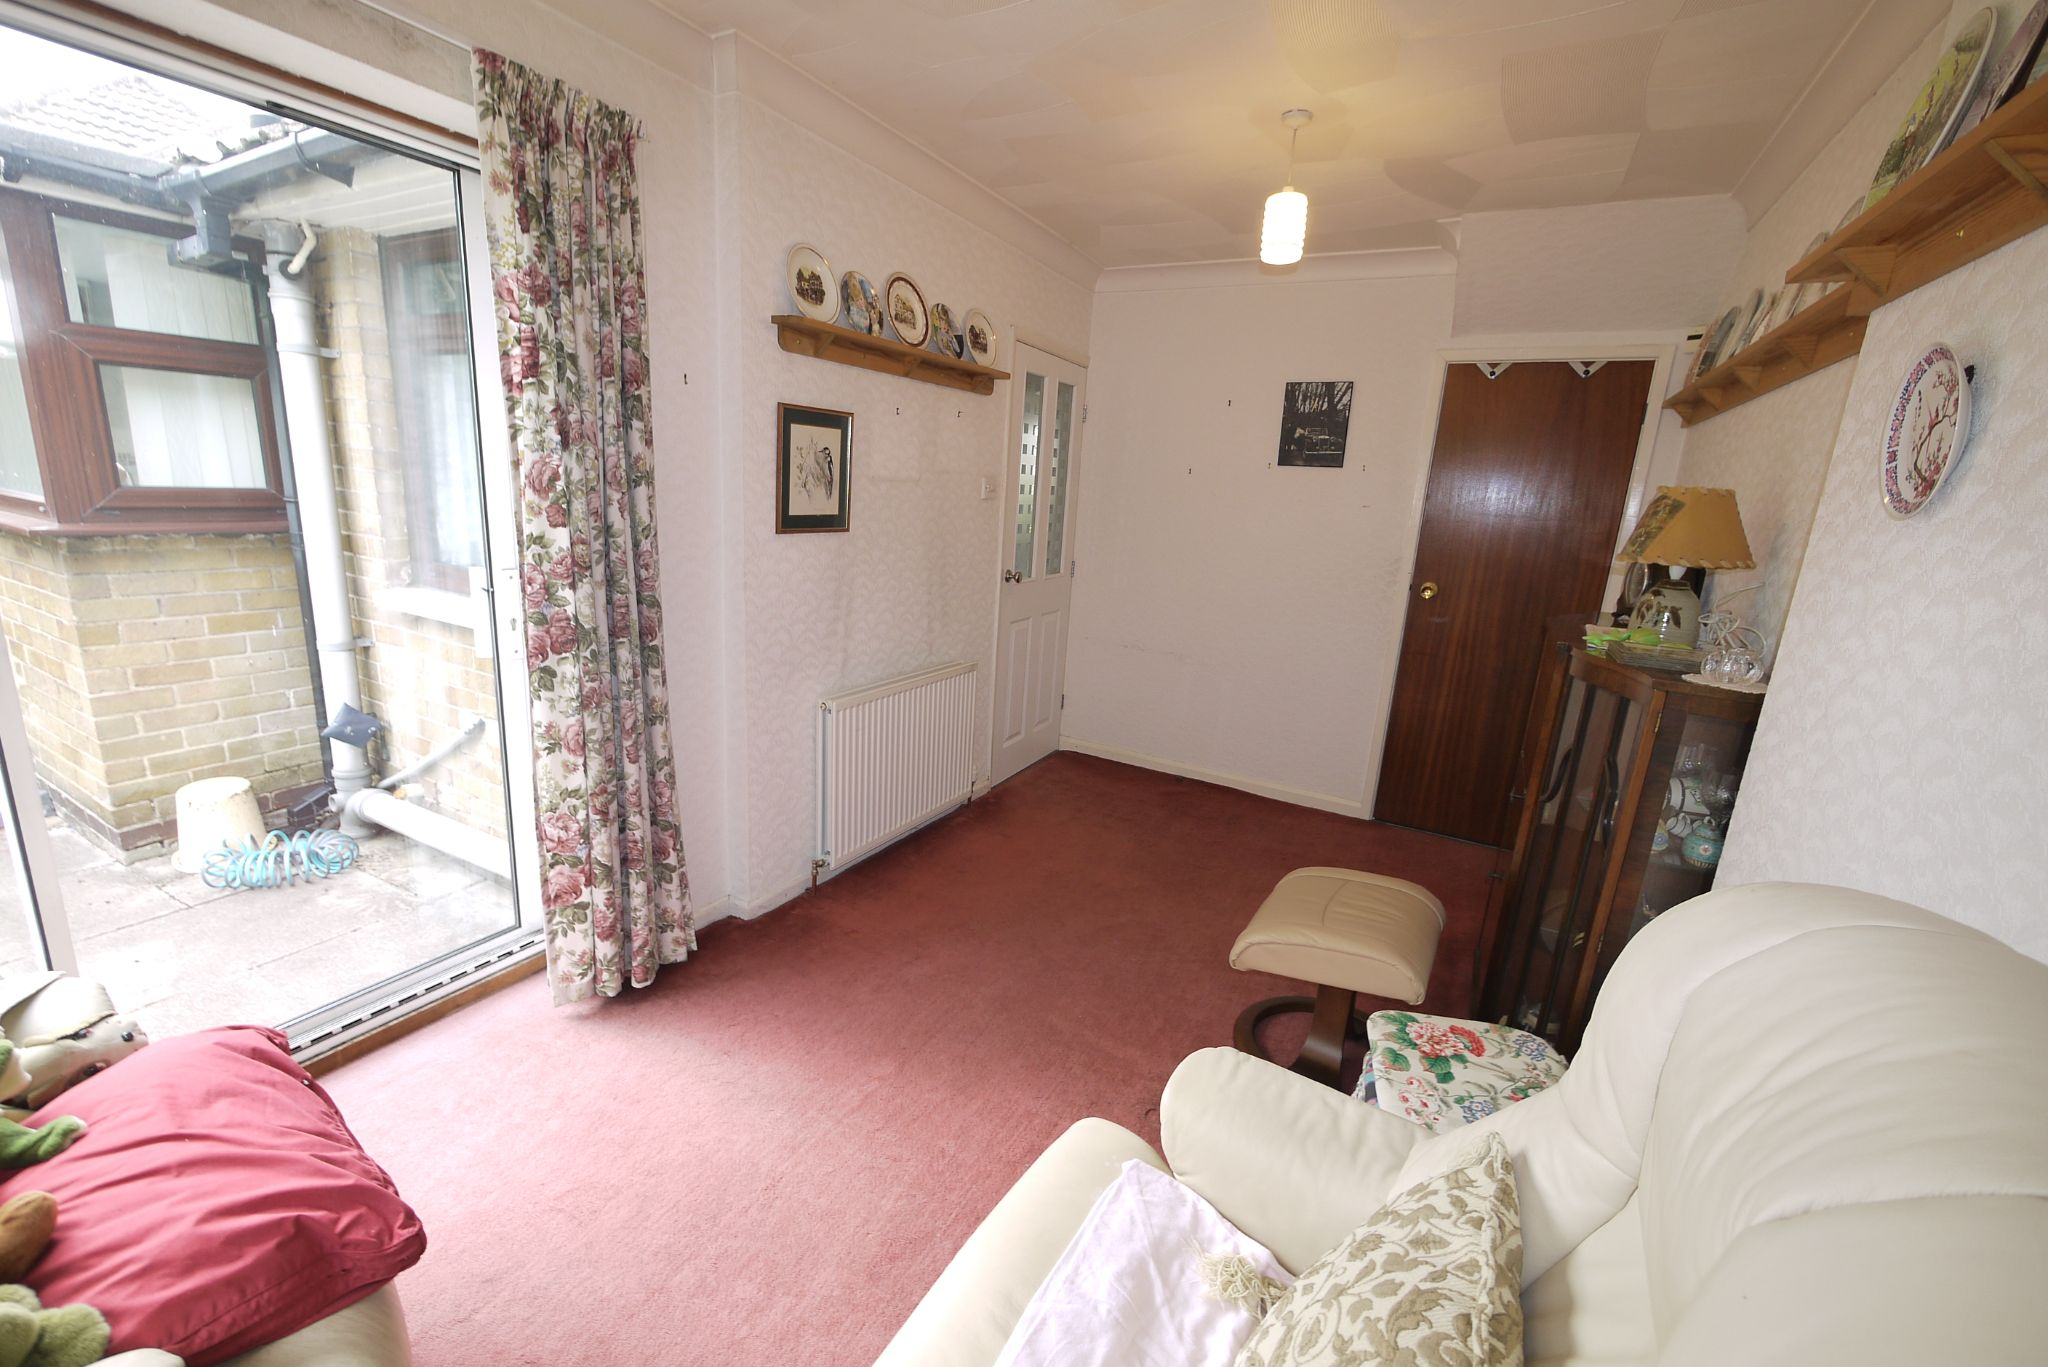 3 bedroom semi-detached bungalow SSTC in Brighouse - Photograph 6.